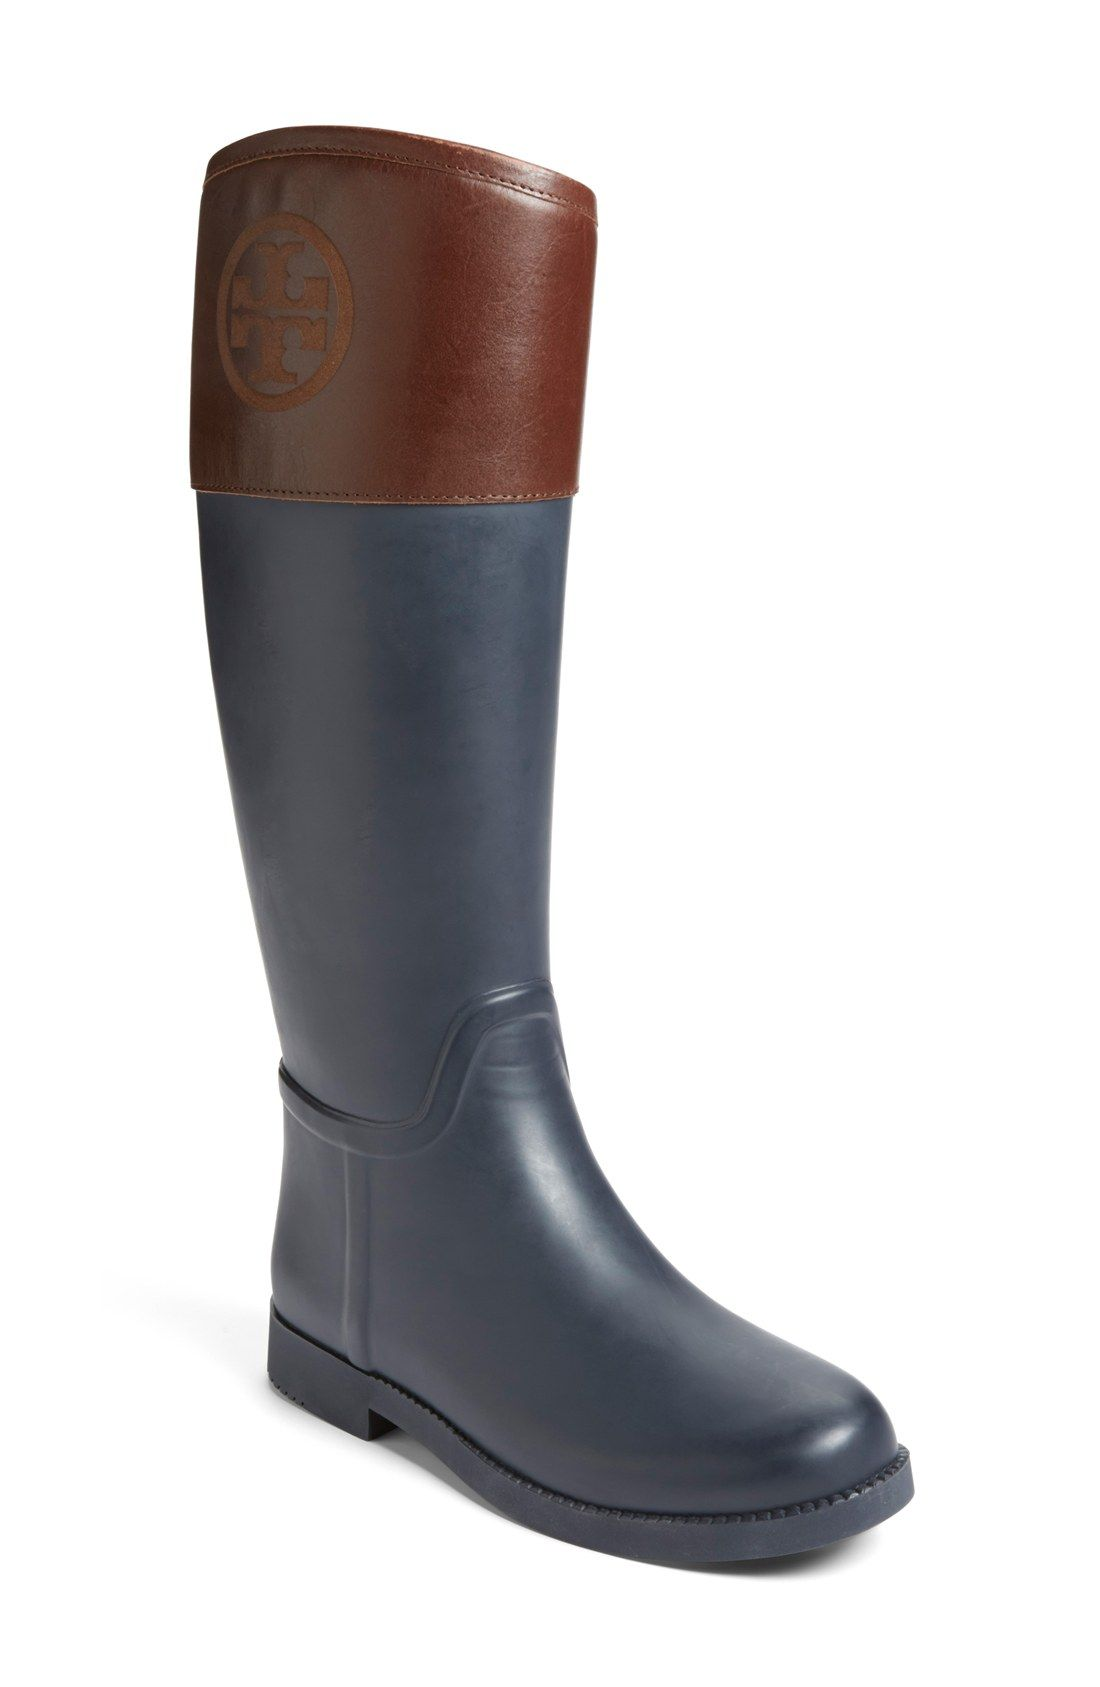 d2228f657535 This Tory Burch waterproof rain boot lends a classic equestrian style